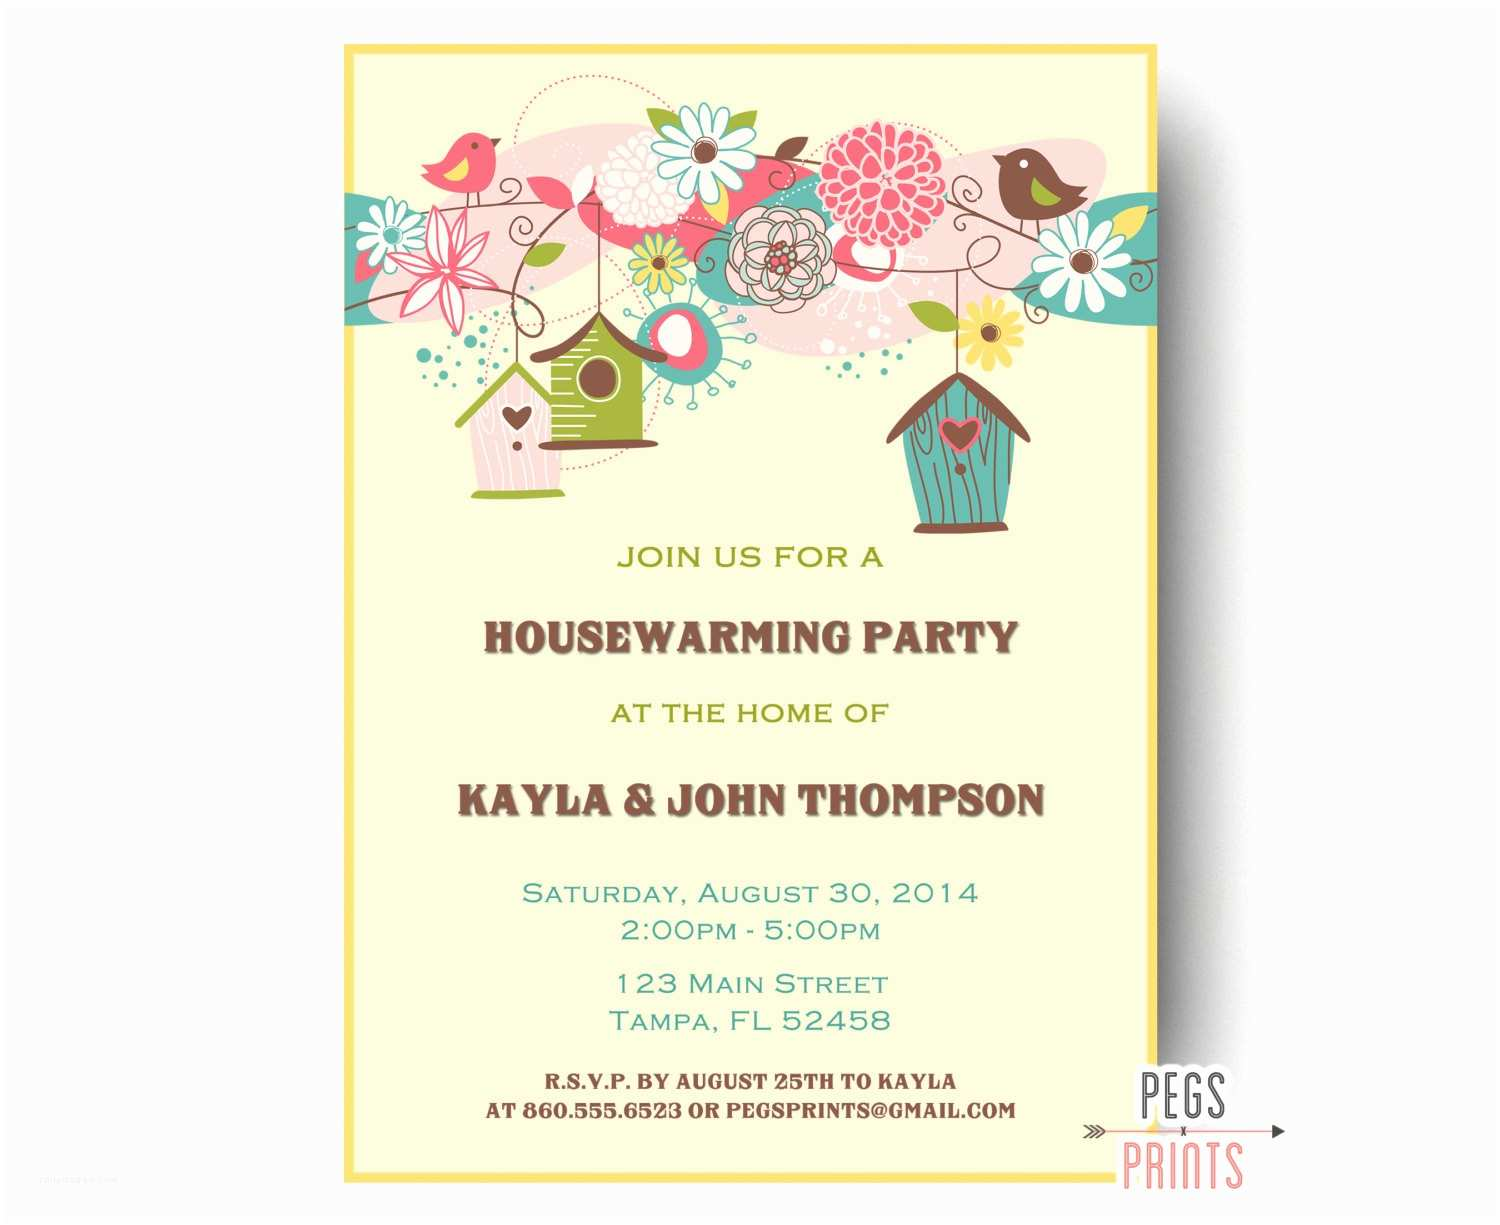 Housewarming Party Invitations Birdhouse Housewarming Party Invitation Bird Housewarming